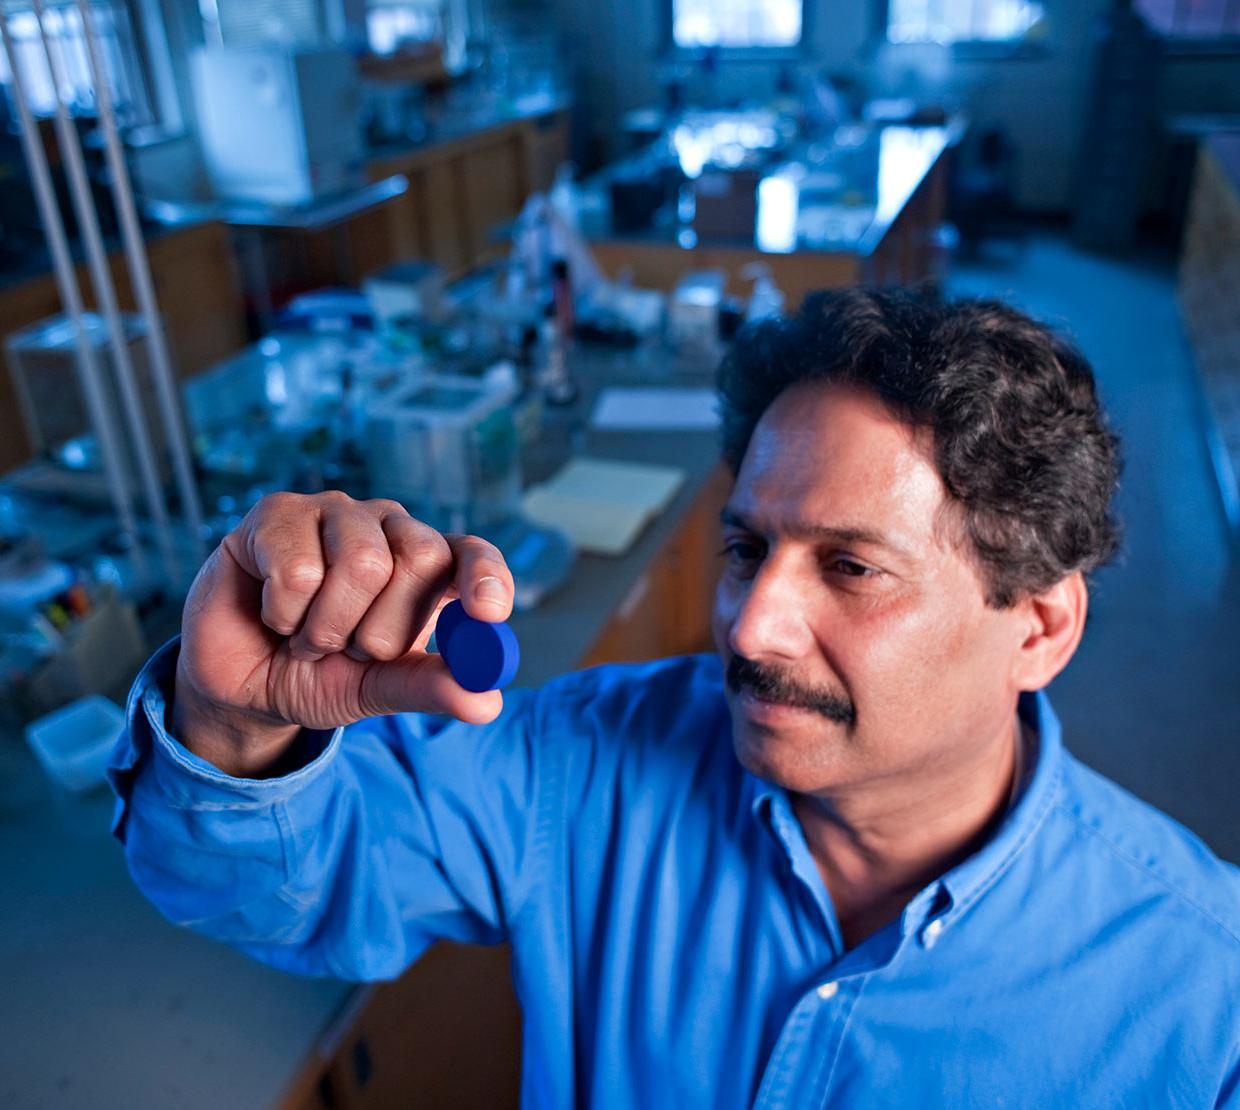 Dr. Mas Subramanian analyzing blue pigment in chemistry lab